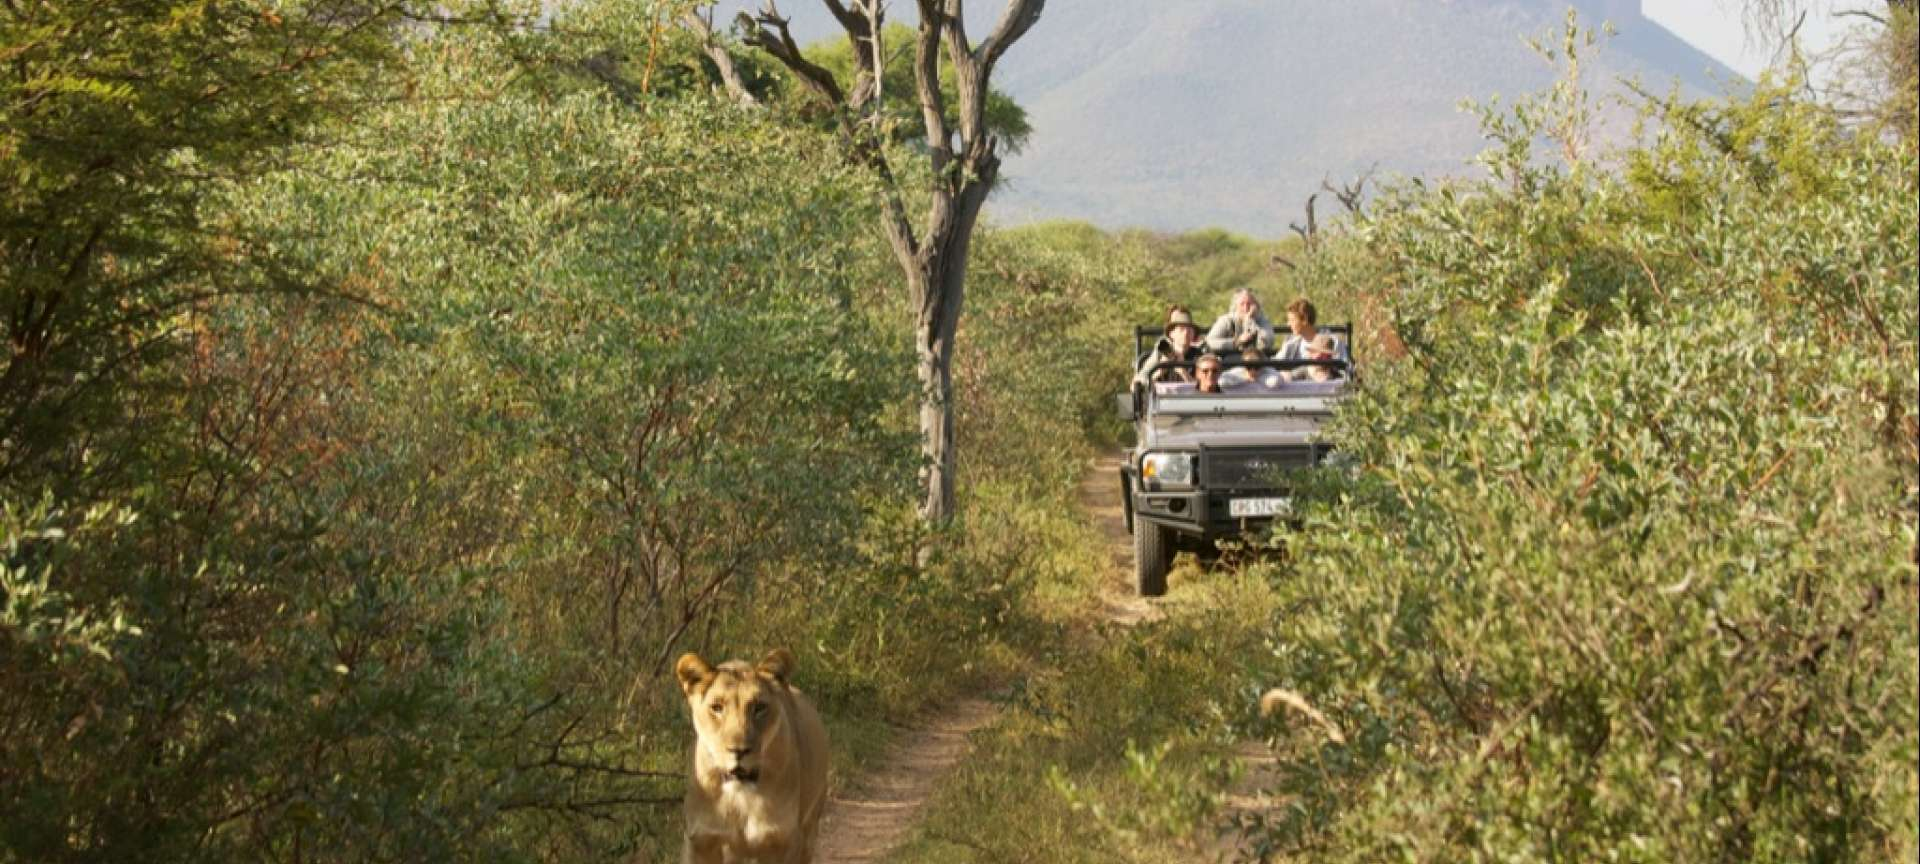 Waterberg - Africa Wildlife Safaris